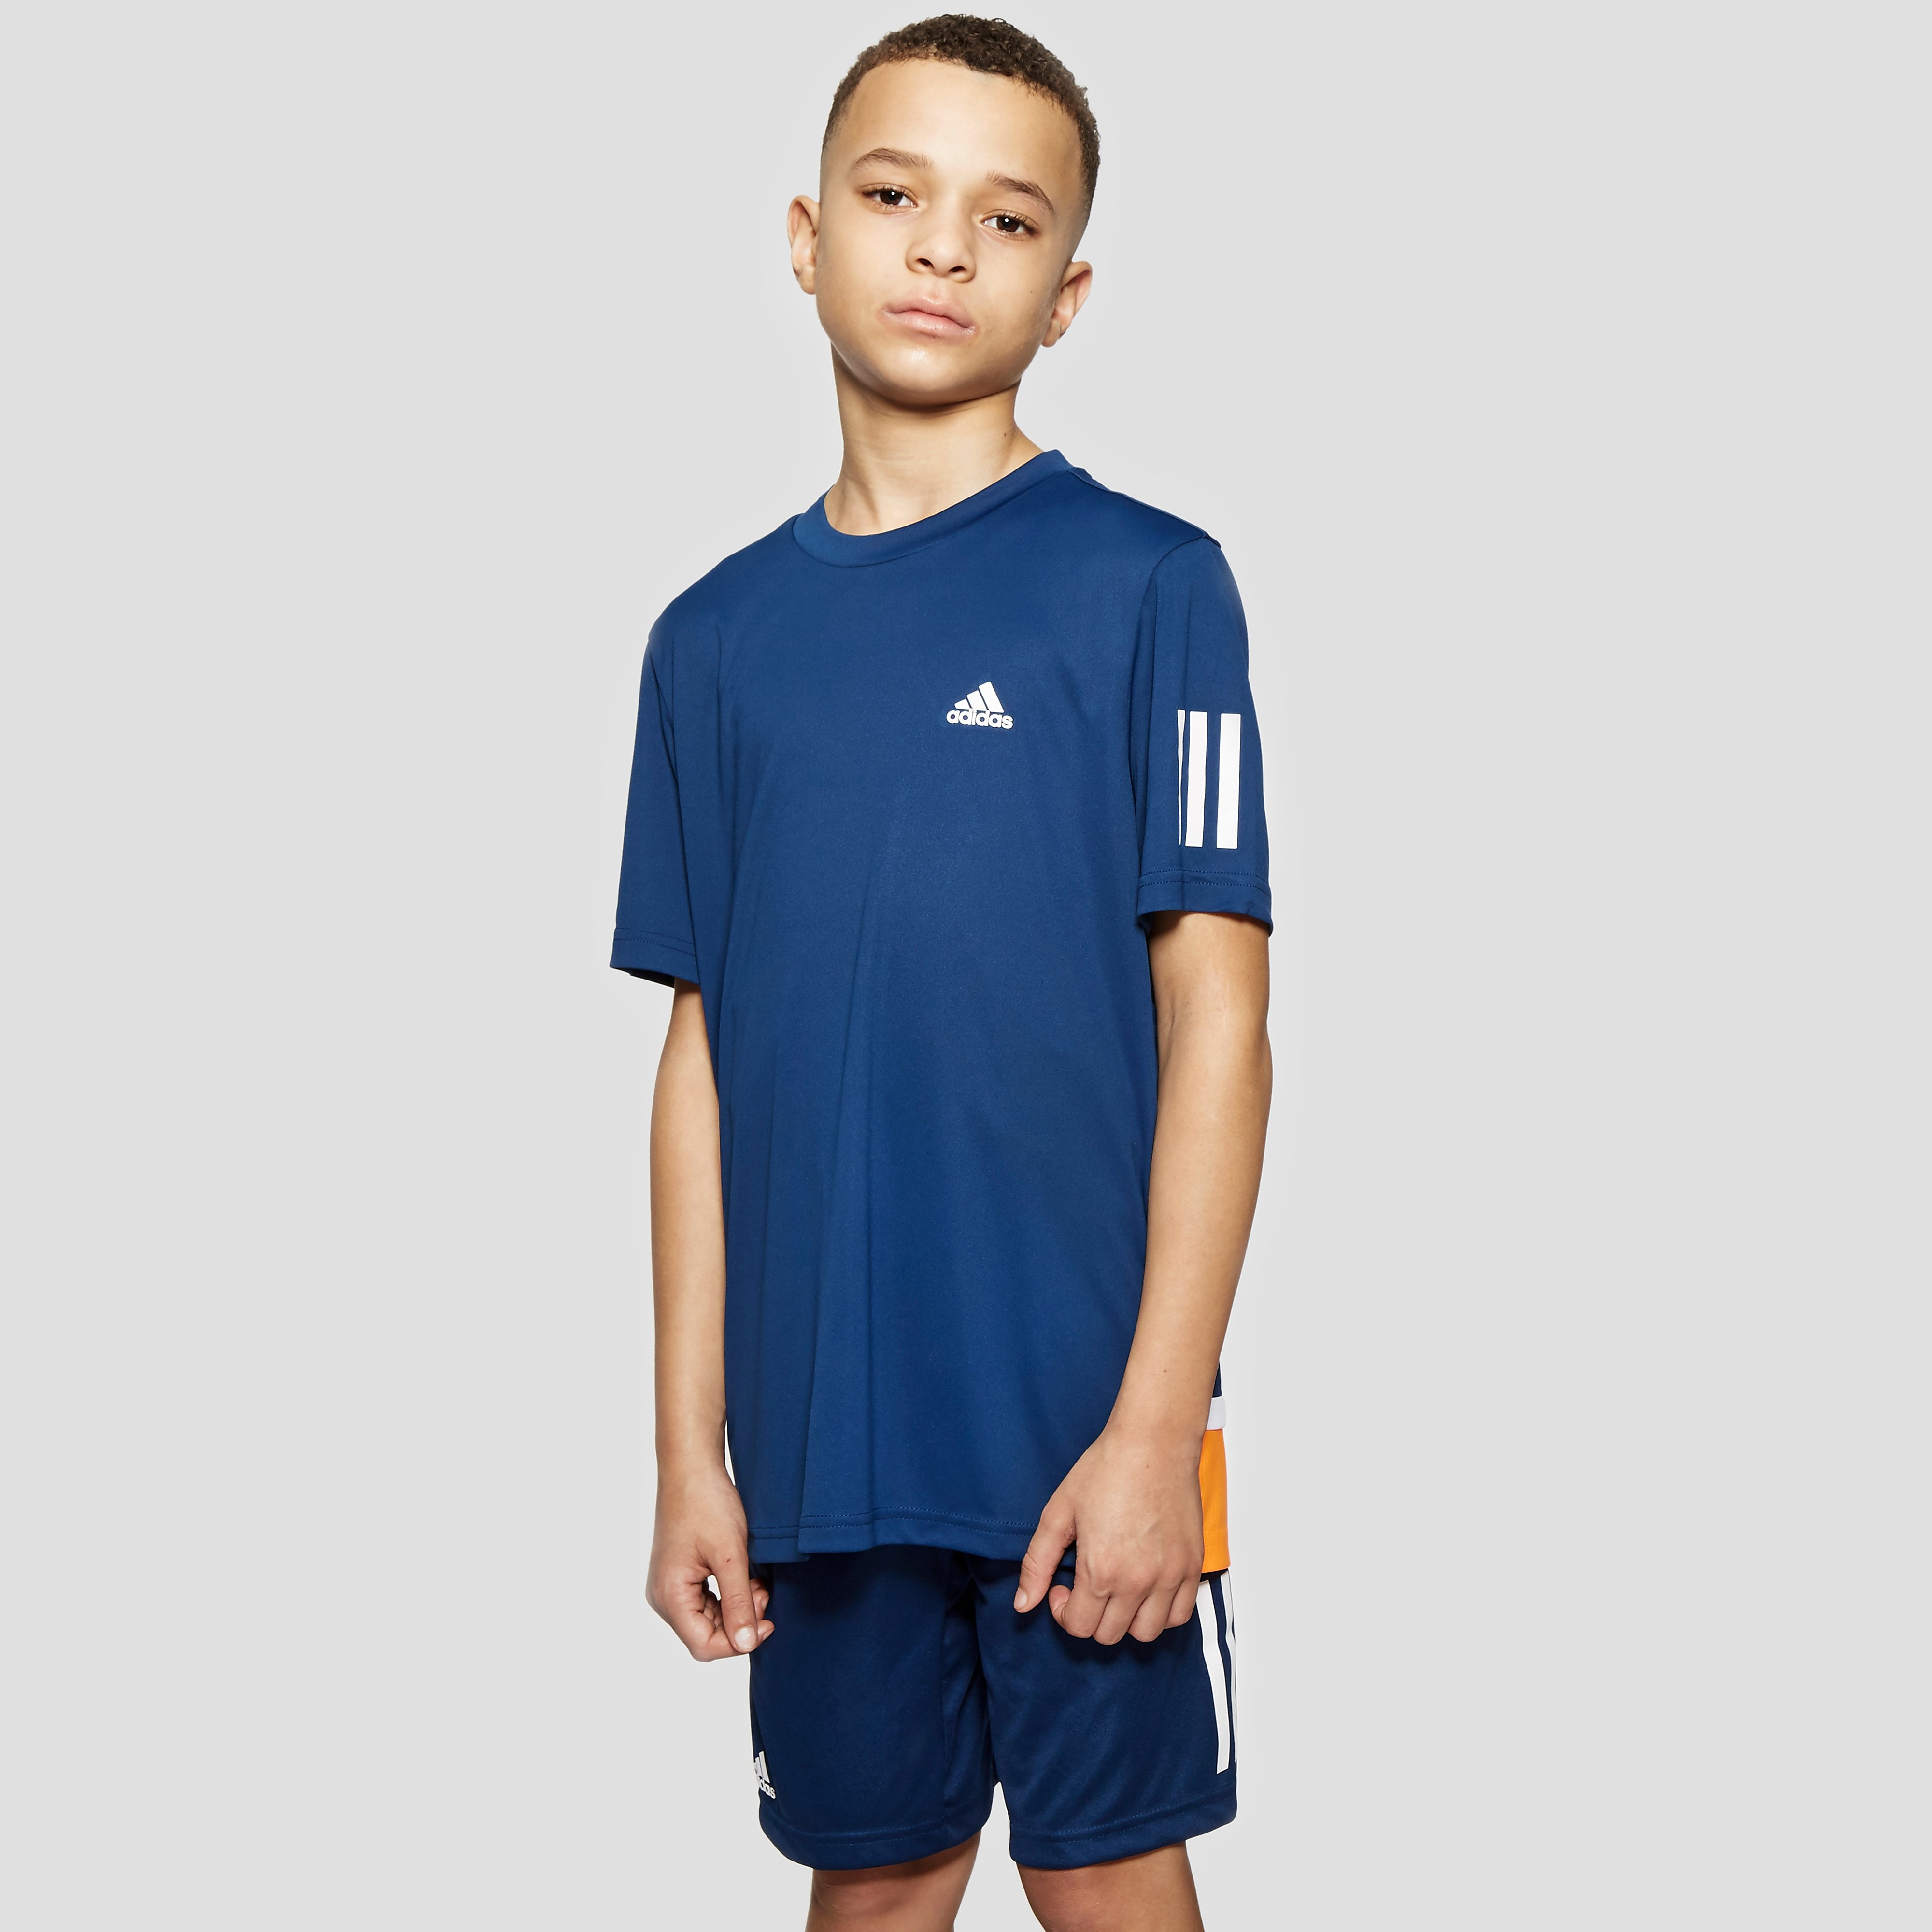 adidas Club Boy's Tennis T-Shirt